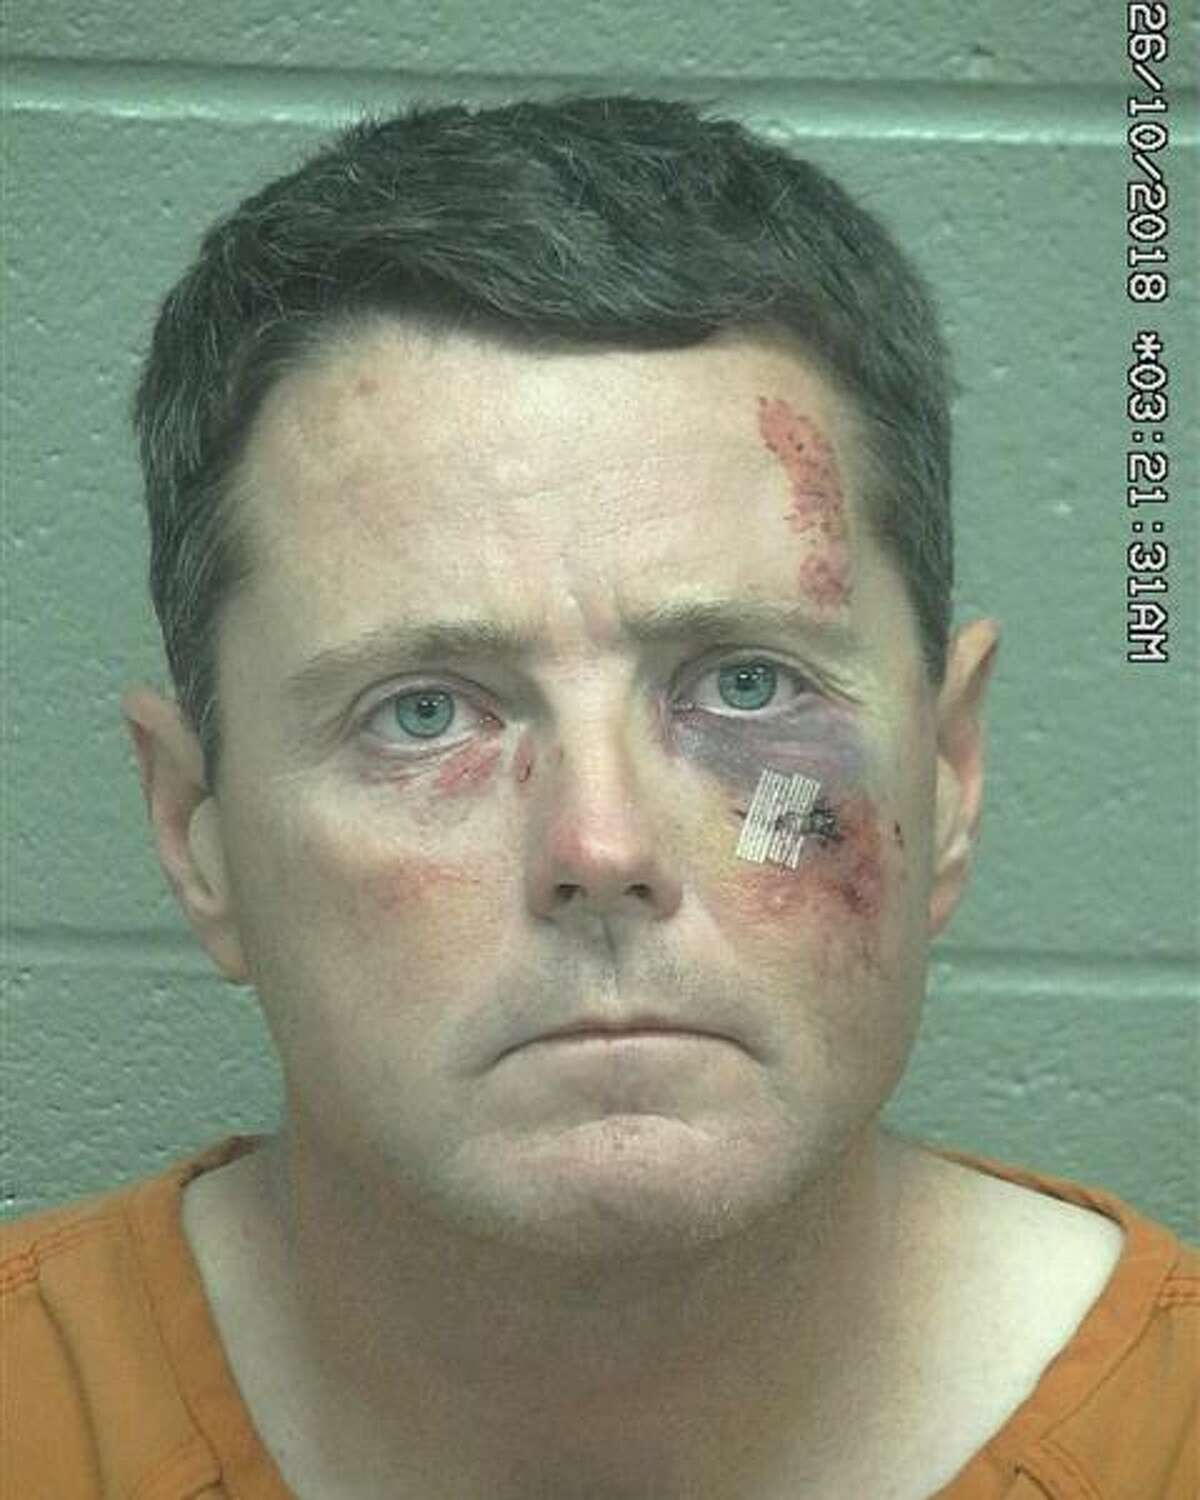 Rodney Shannon Mackie Ausmus, 42,was arrested Oct. 25 after he allegedly swung a shovel at a man, according to court documents.